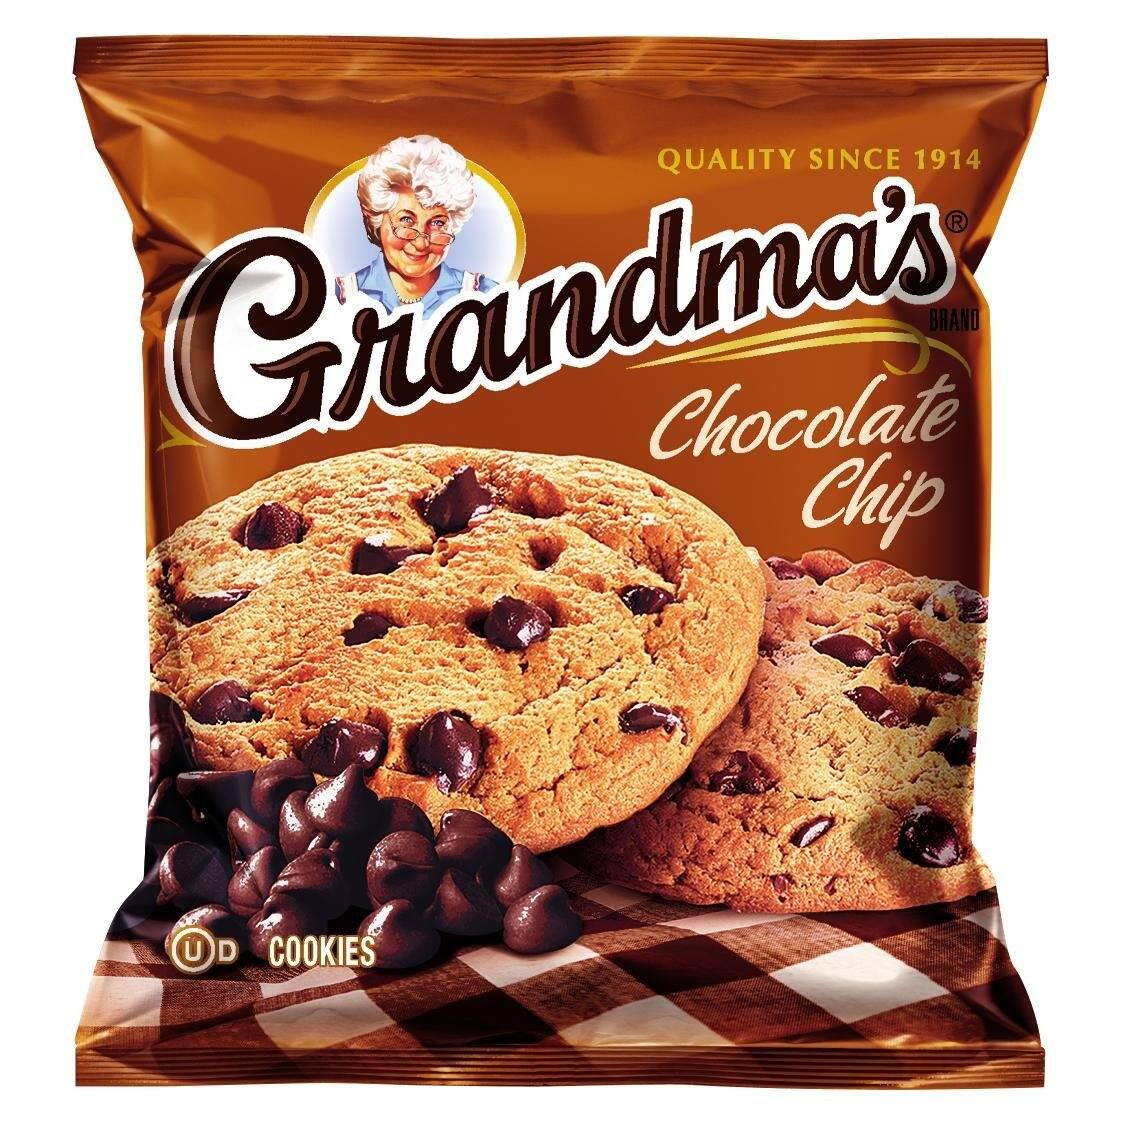 Prime Members: 60-Pack 2.5oz Grandma's Cookies (Chocolate Chip or Peanut Butter)